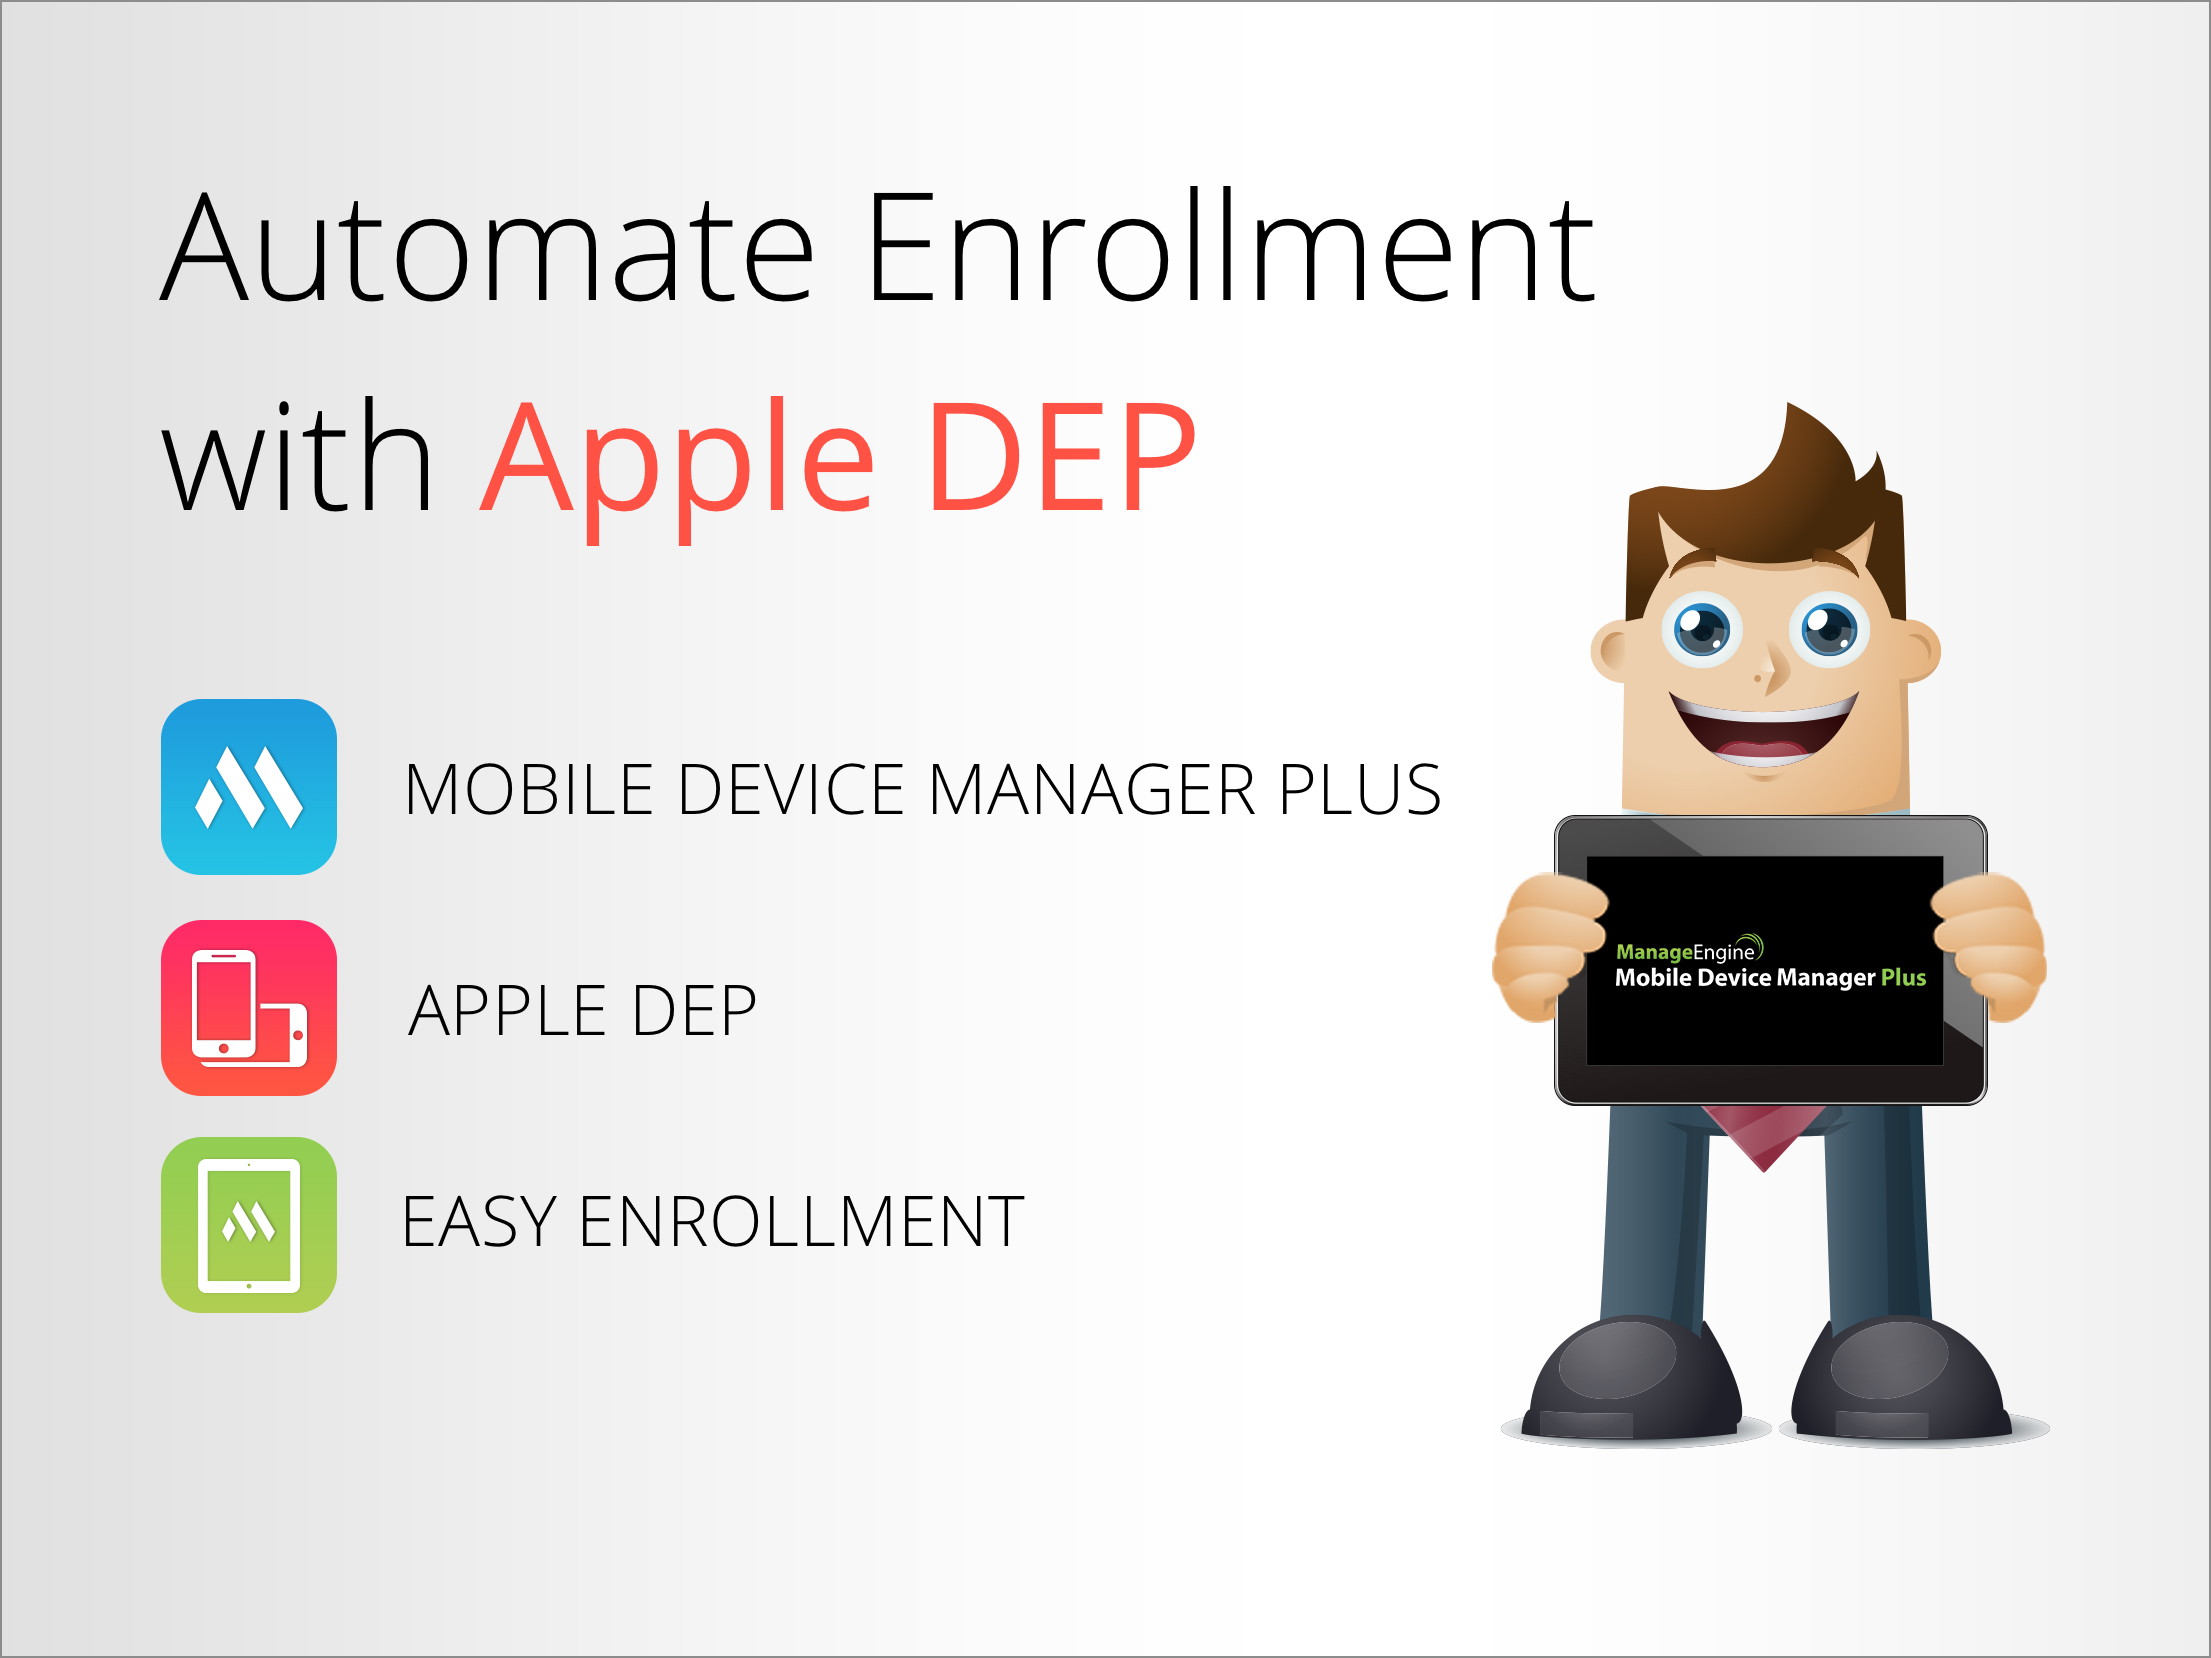 Mobile Device Manager Plus is now equipped with Apple DEP for easy enrollment!